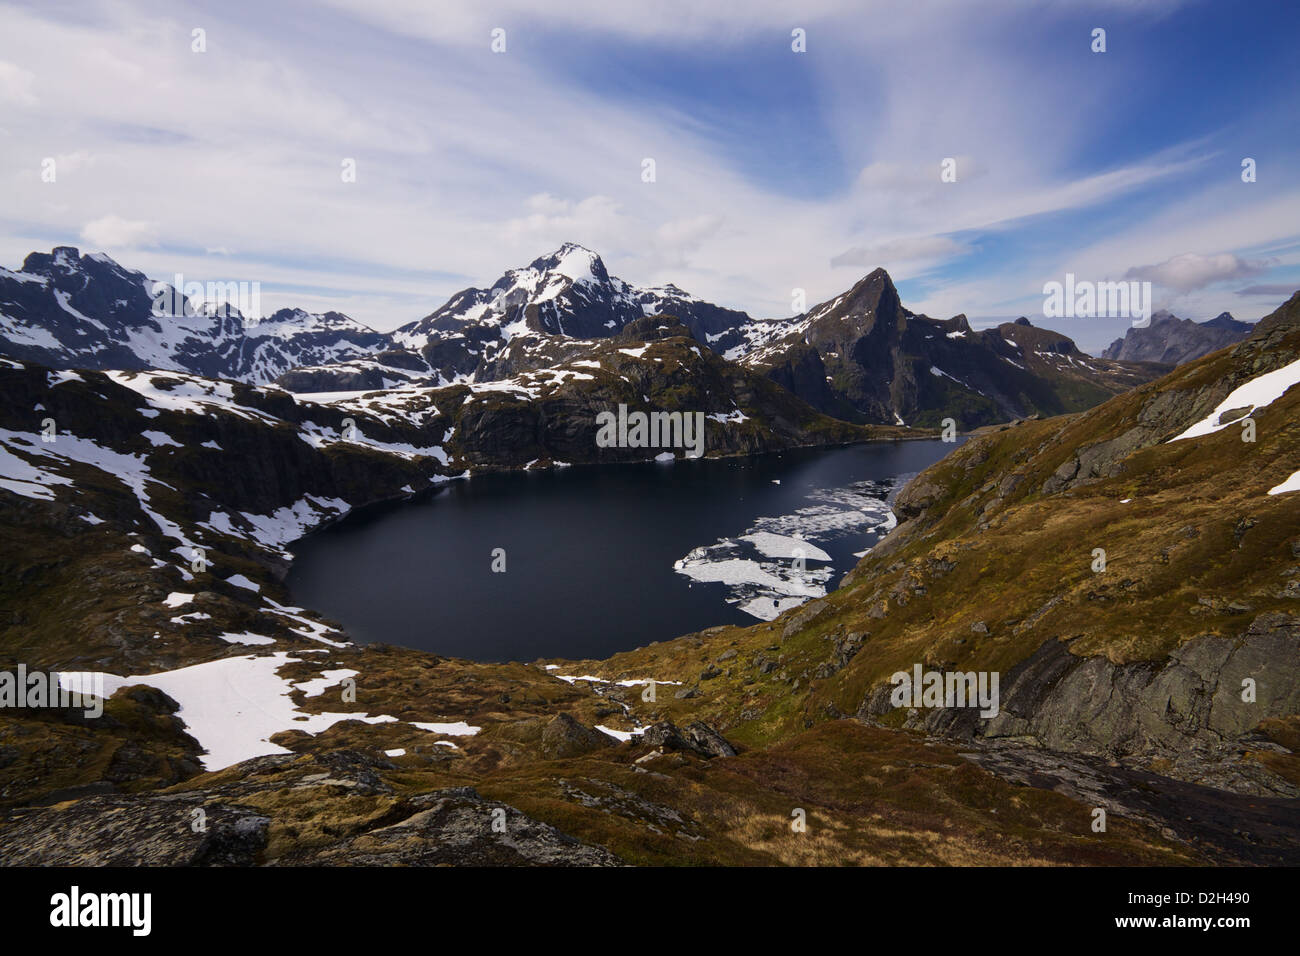 Scenic panorama with frozen fjord and mountain peaks in Norway - Stock Image